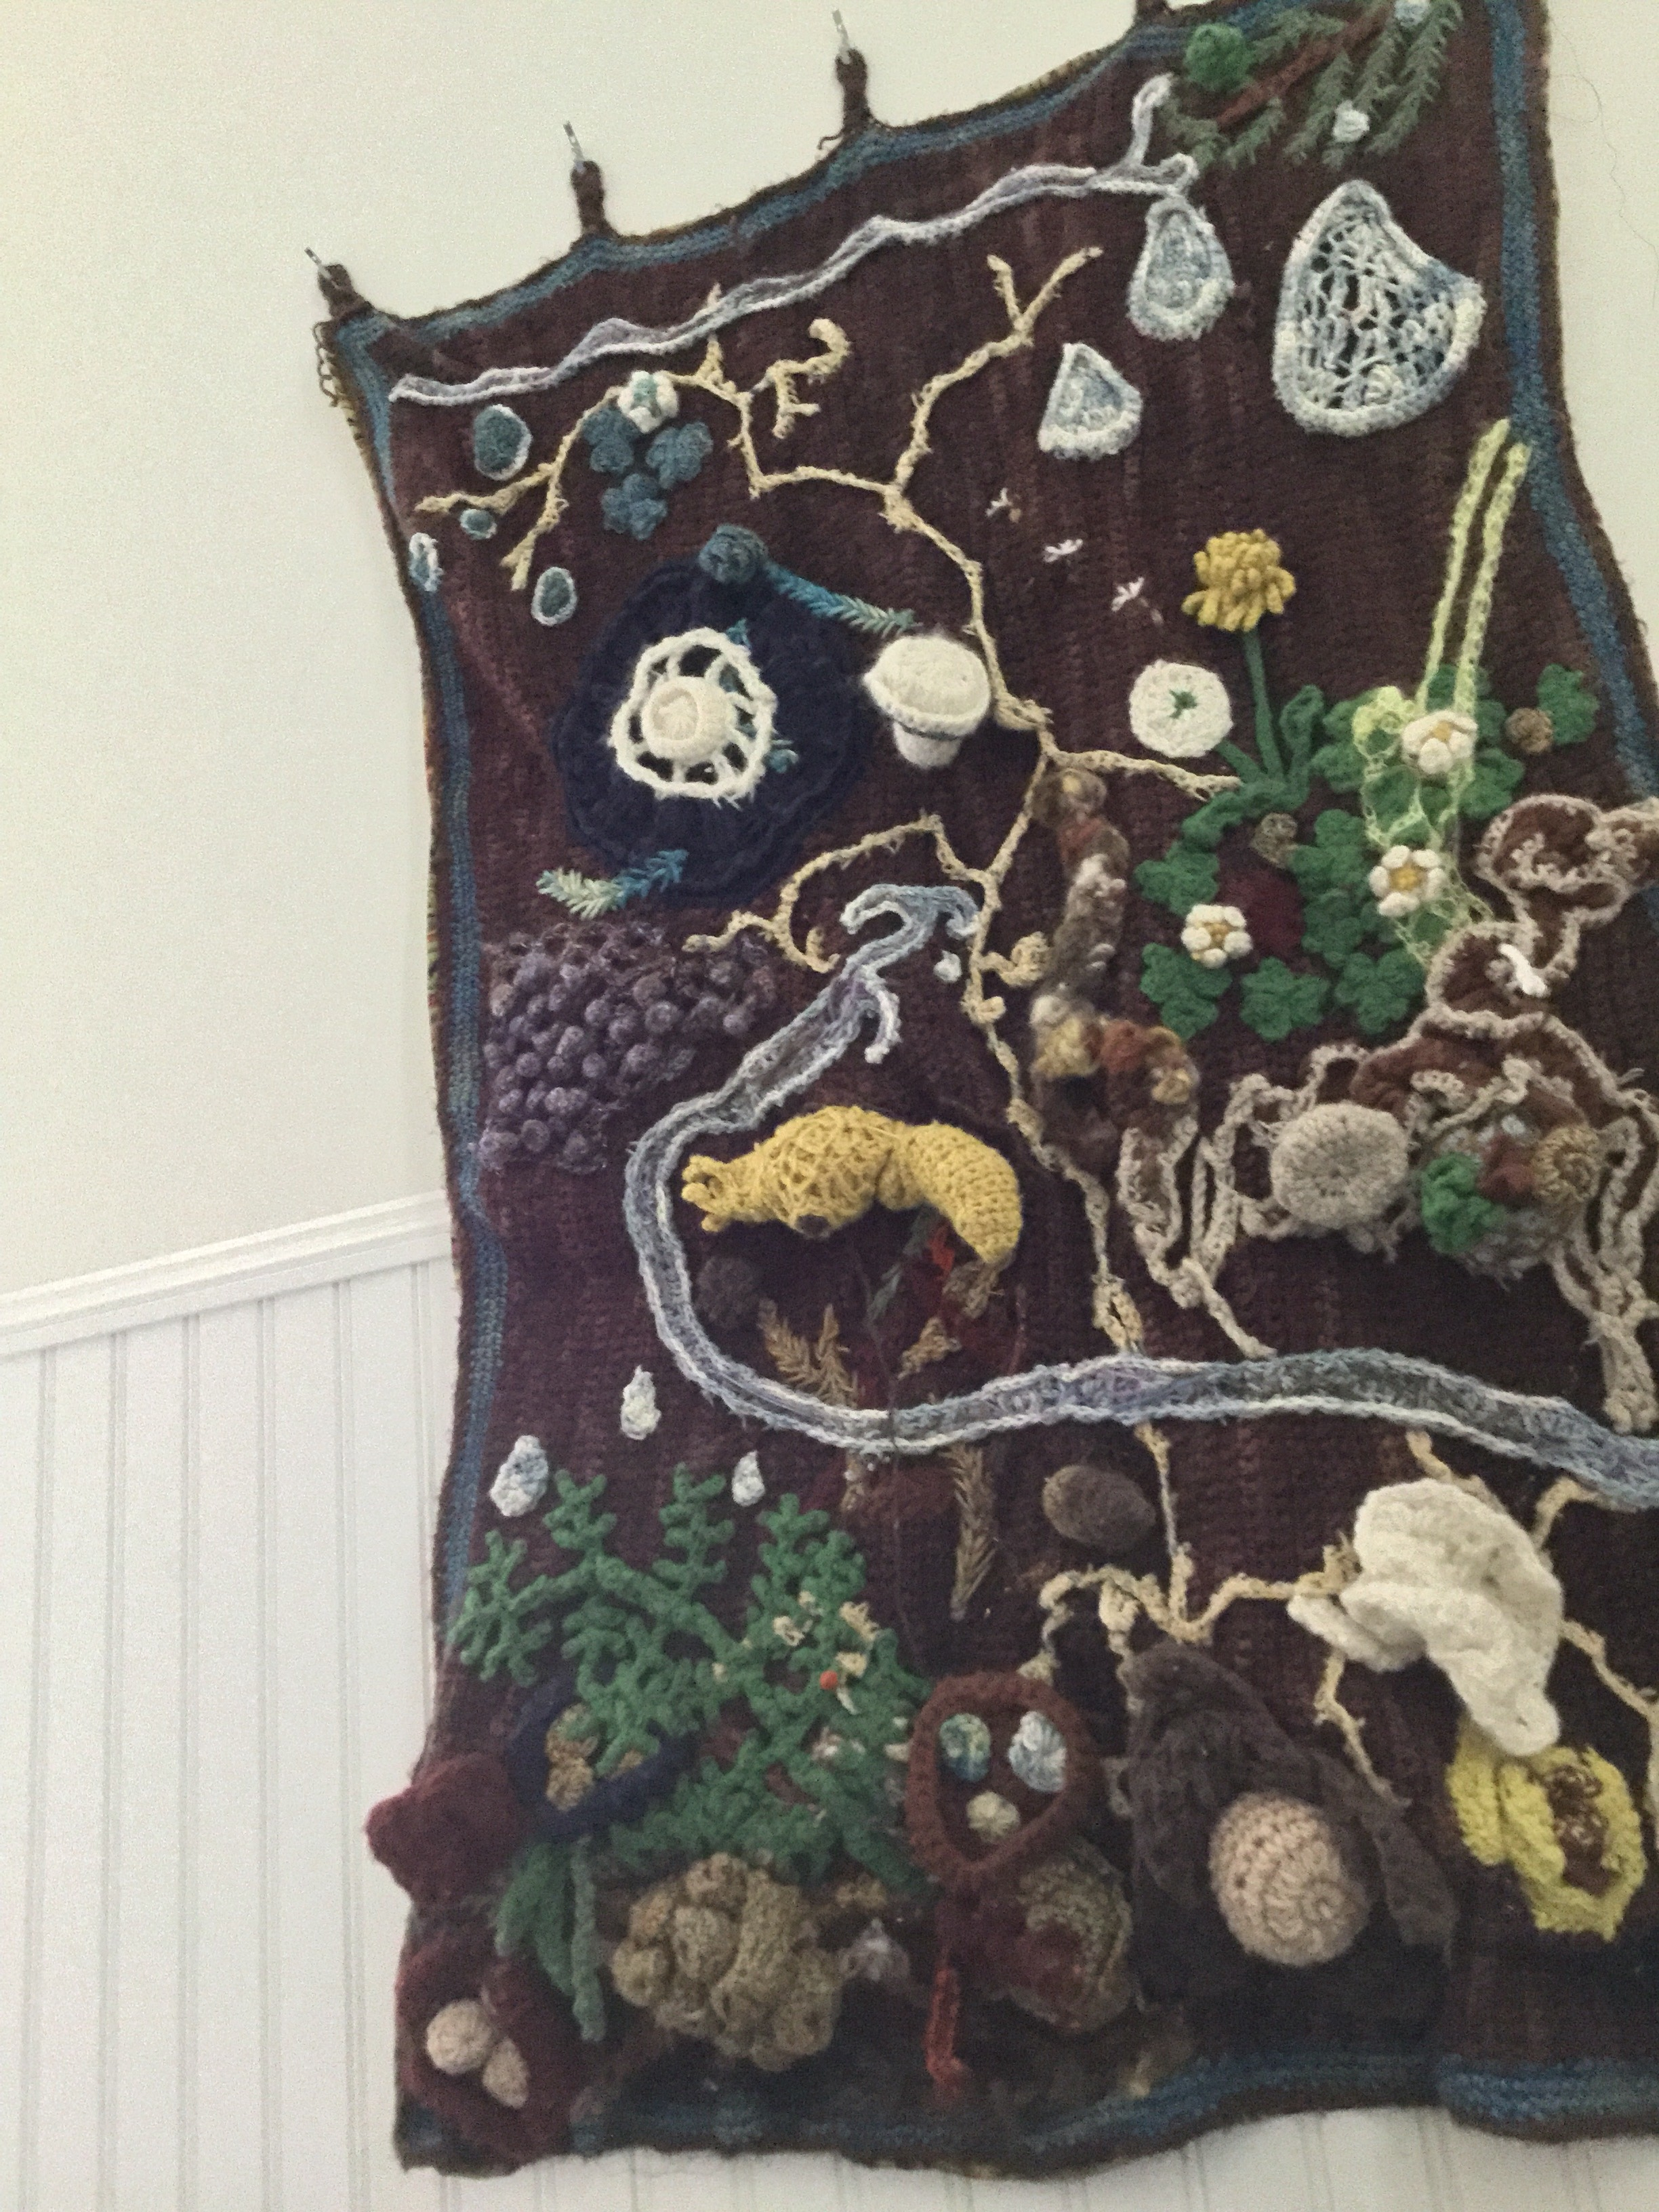 Elaborate crocheted wall hanging depicting the forest floor of Redwood Terrace.